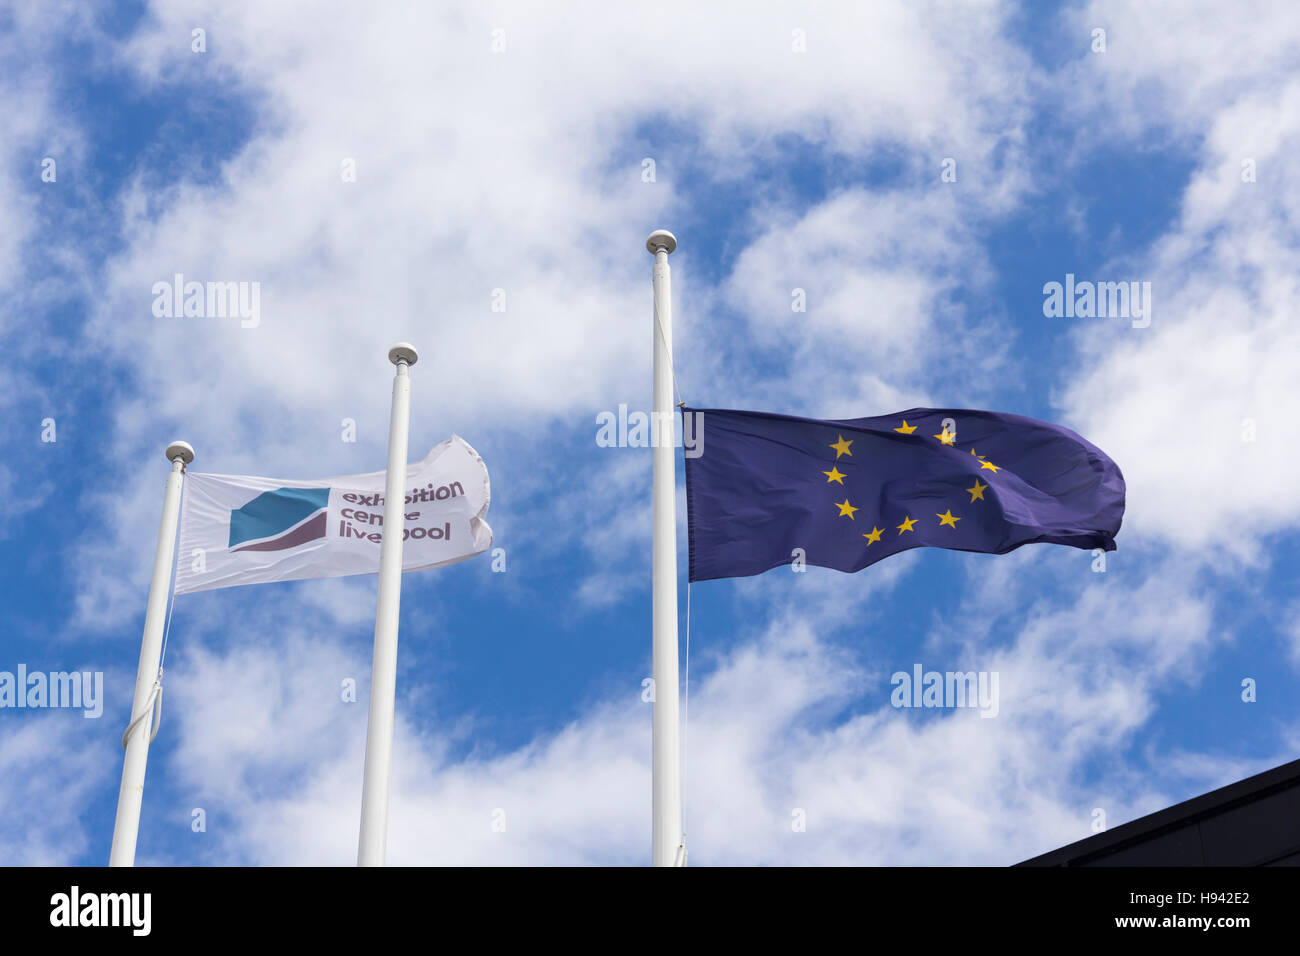 The flag of the European Community flies over Liverpool Exhibition Centre on Kings Dock Liverpool waterfront. - Stock Image